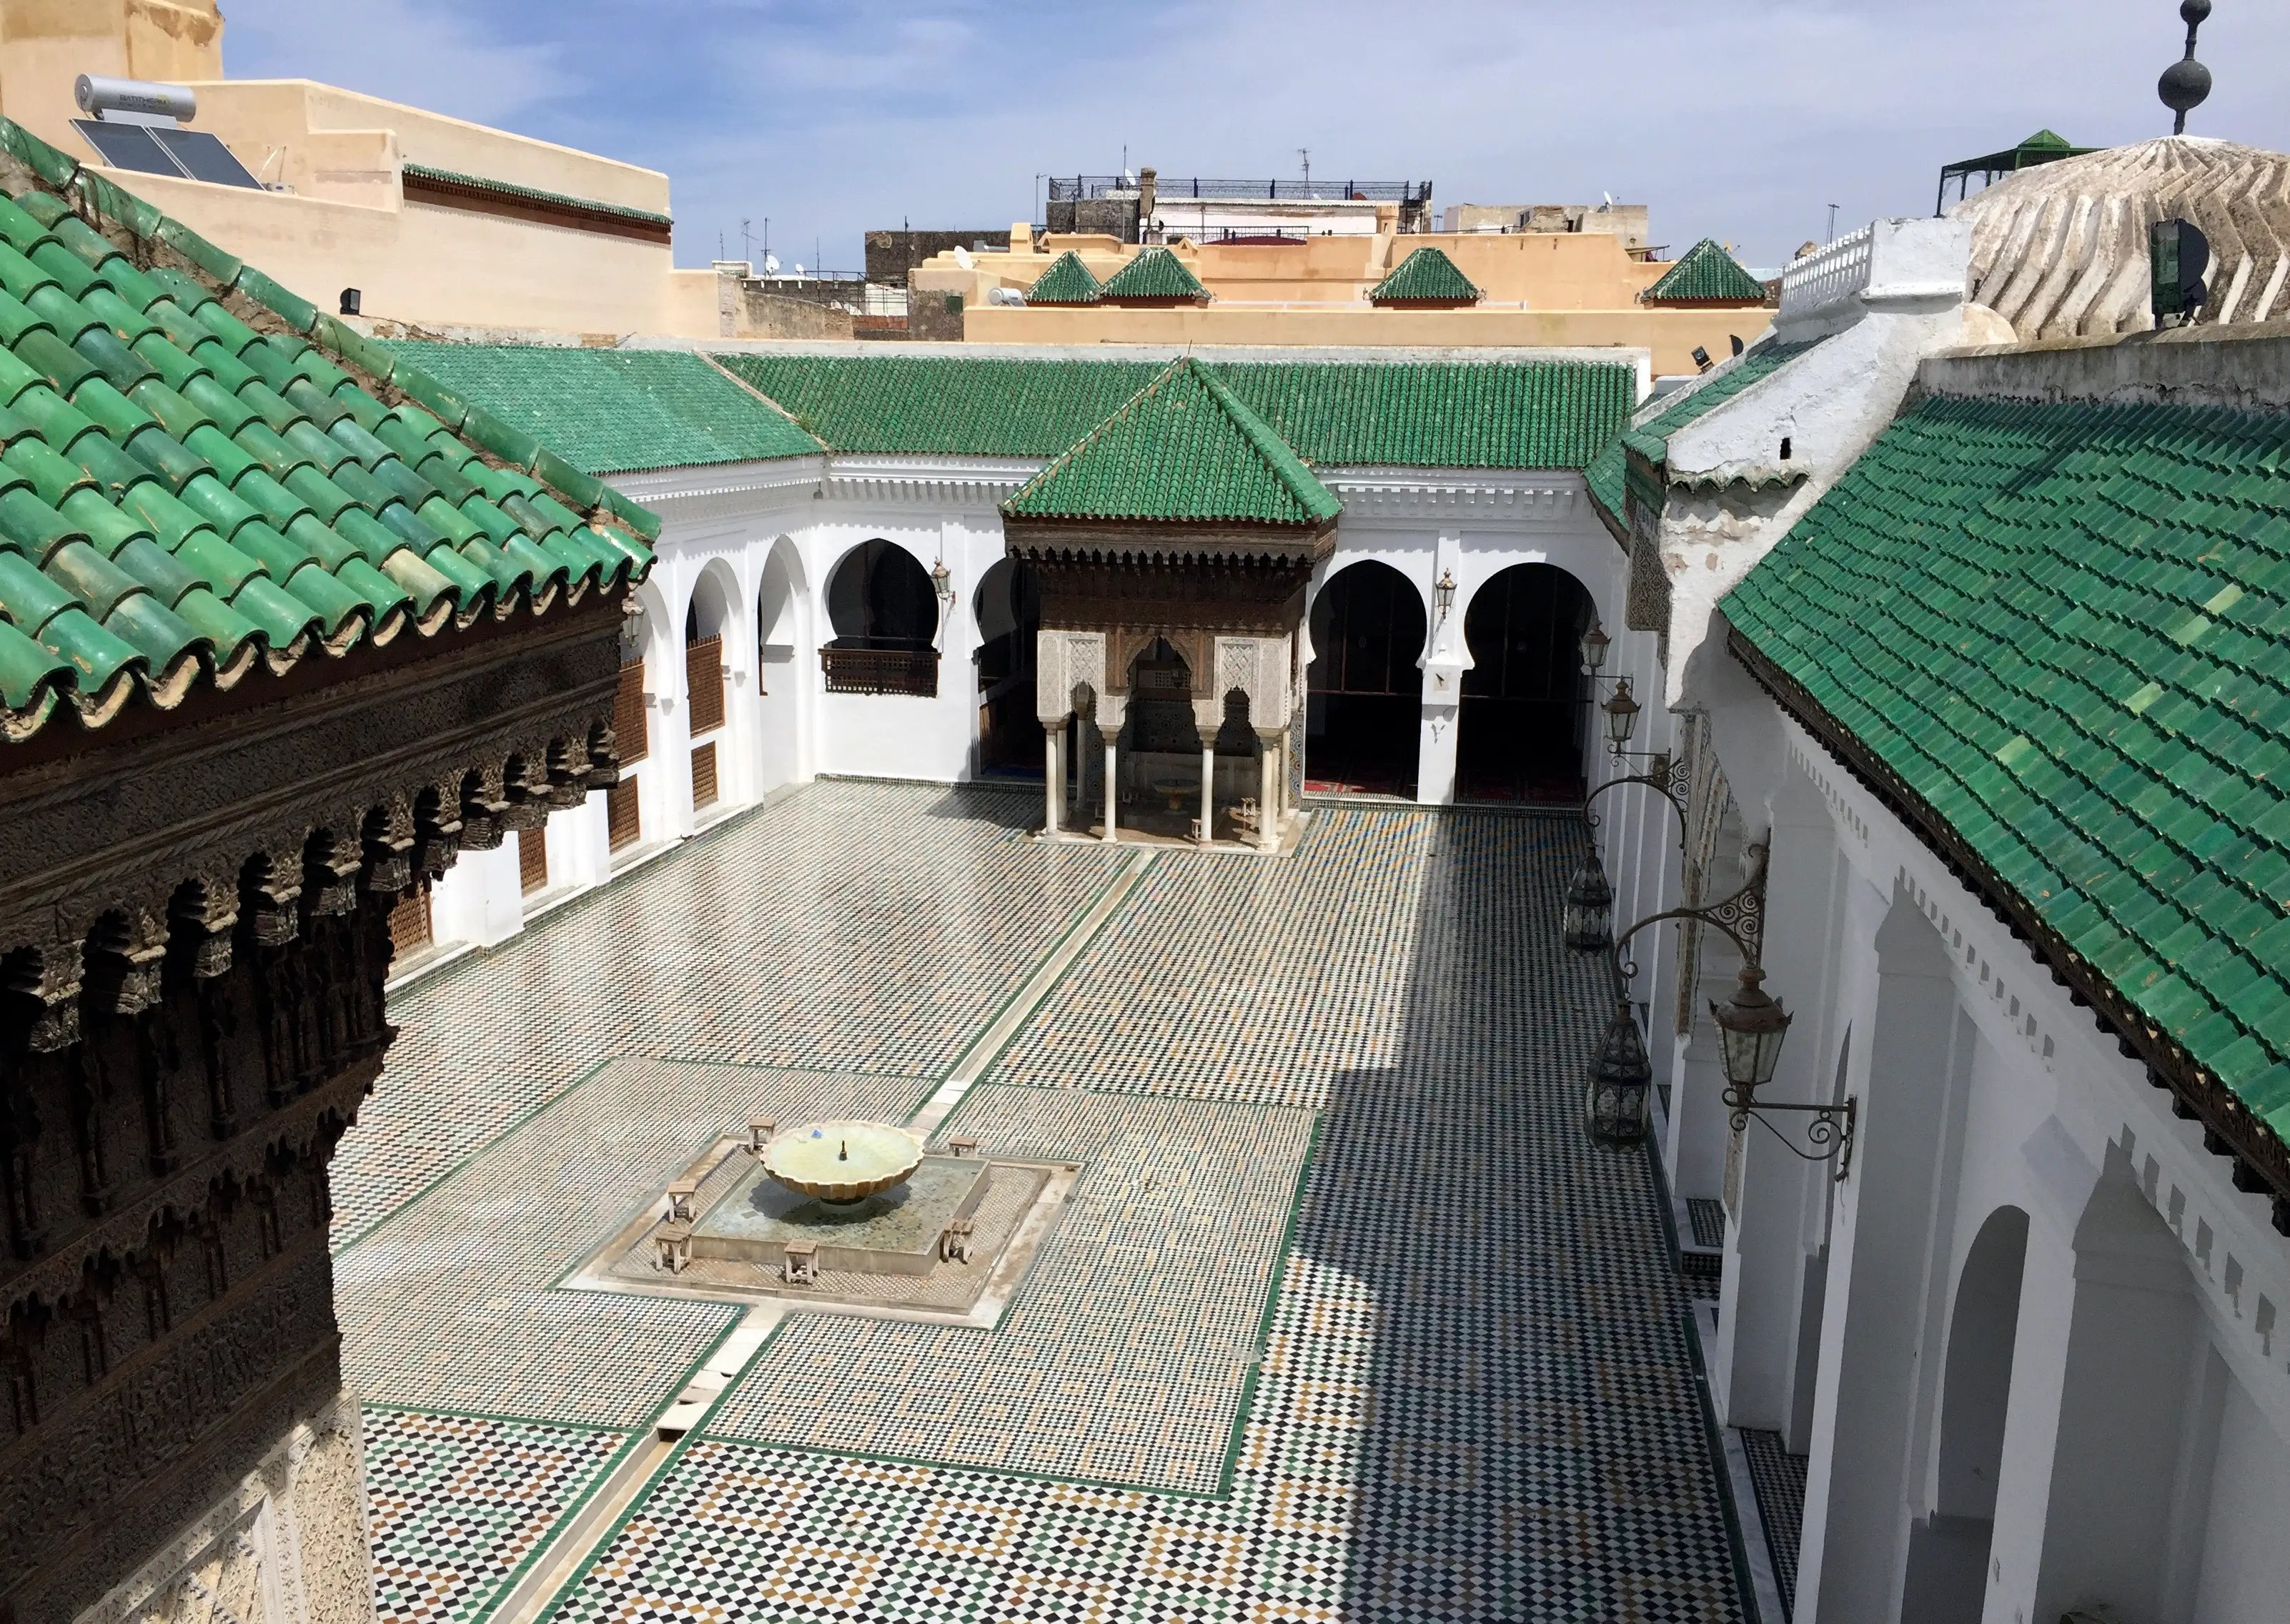 The al-Qarawiyyin university, library, and mosque were founded by Fatima El-Fihriya in 859 — around the time early forms of algebra were being invented.